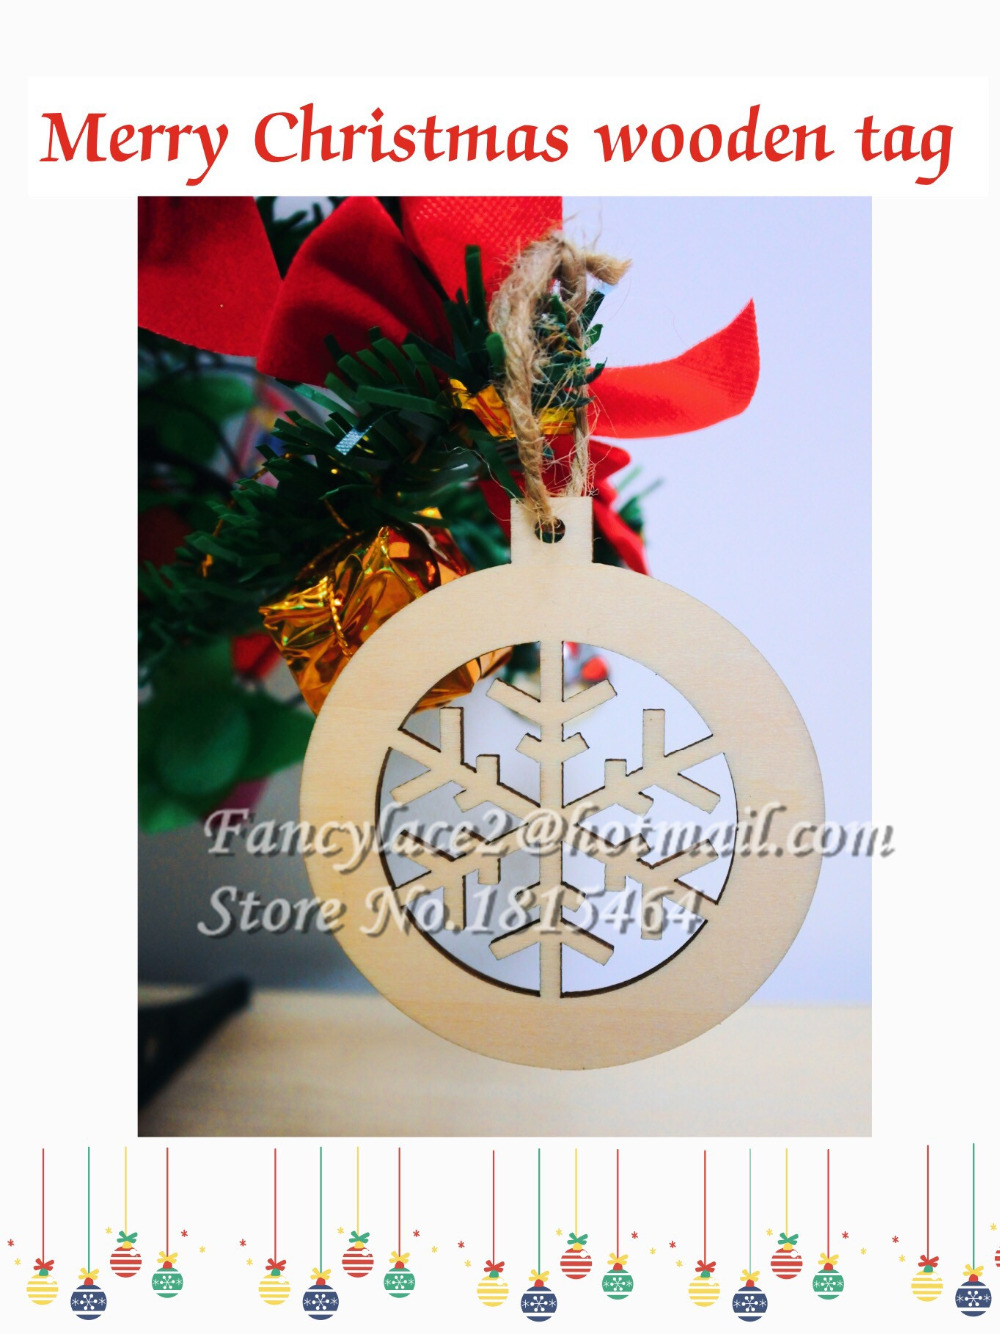 Bell christmas ornament - 60pcs Christmas Tree Decoration Bell Snow Wooden Tags Christmas Ornaments Snow Tag New Year Holiday Party